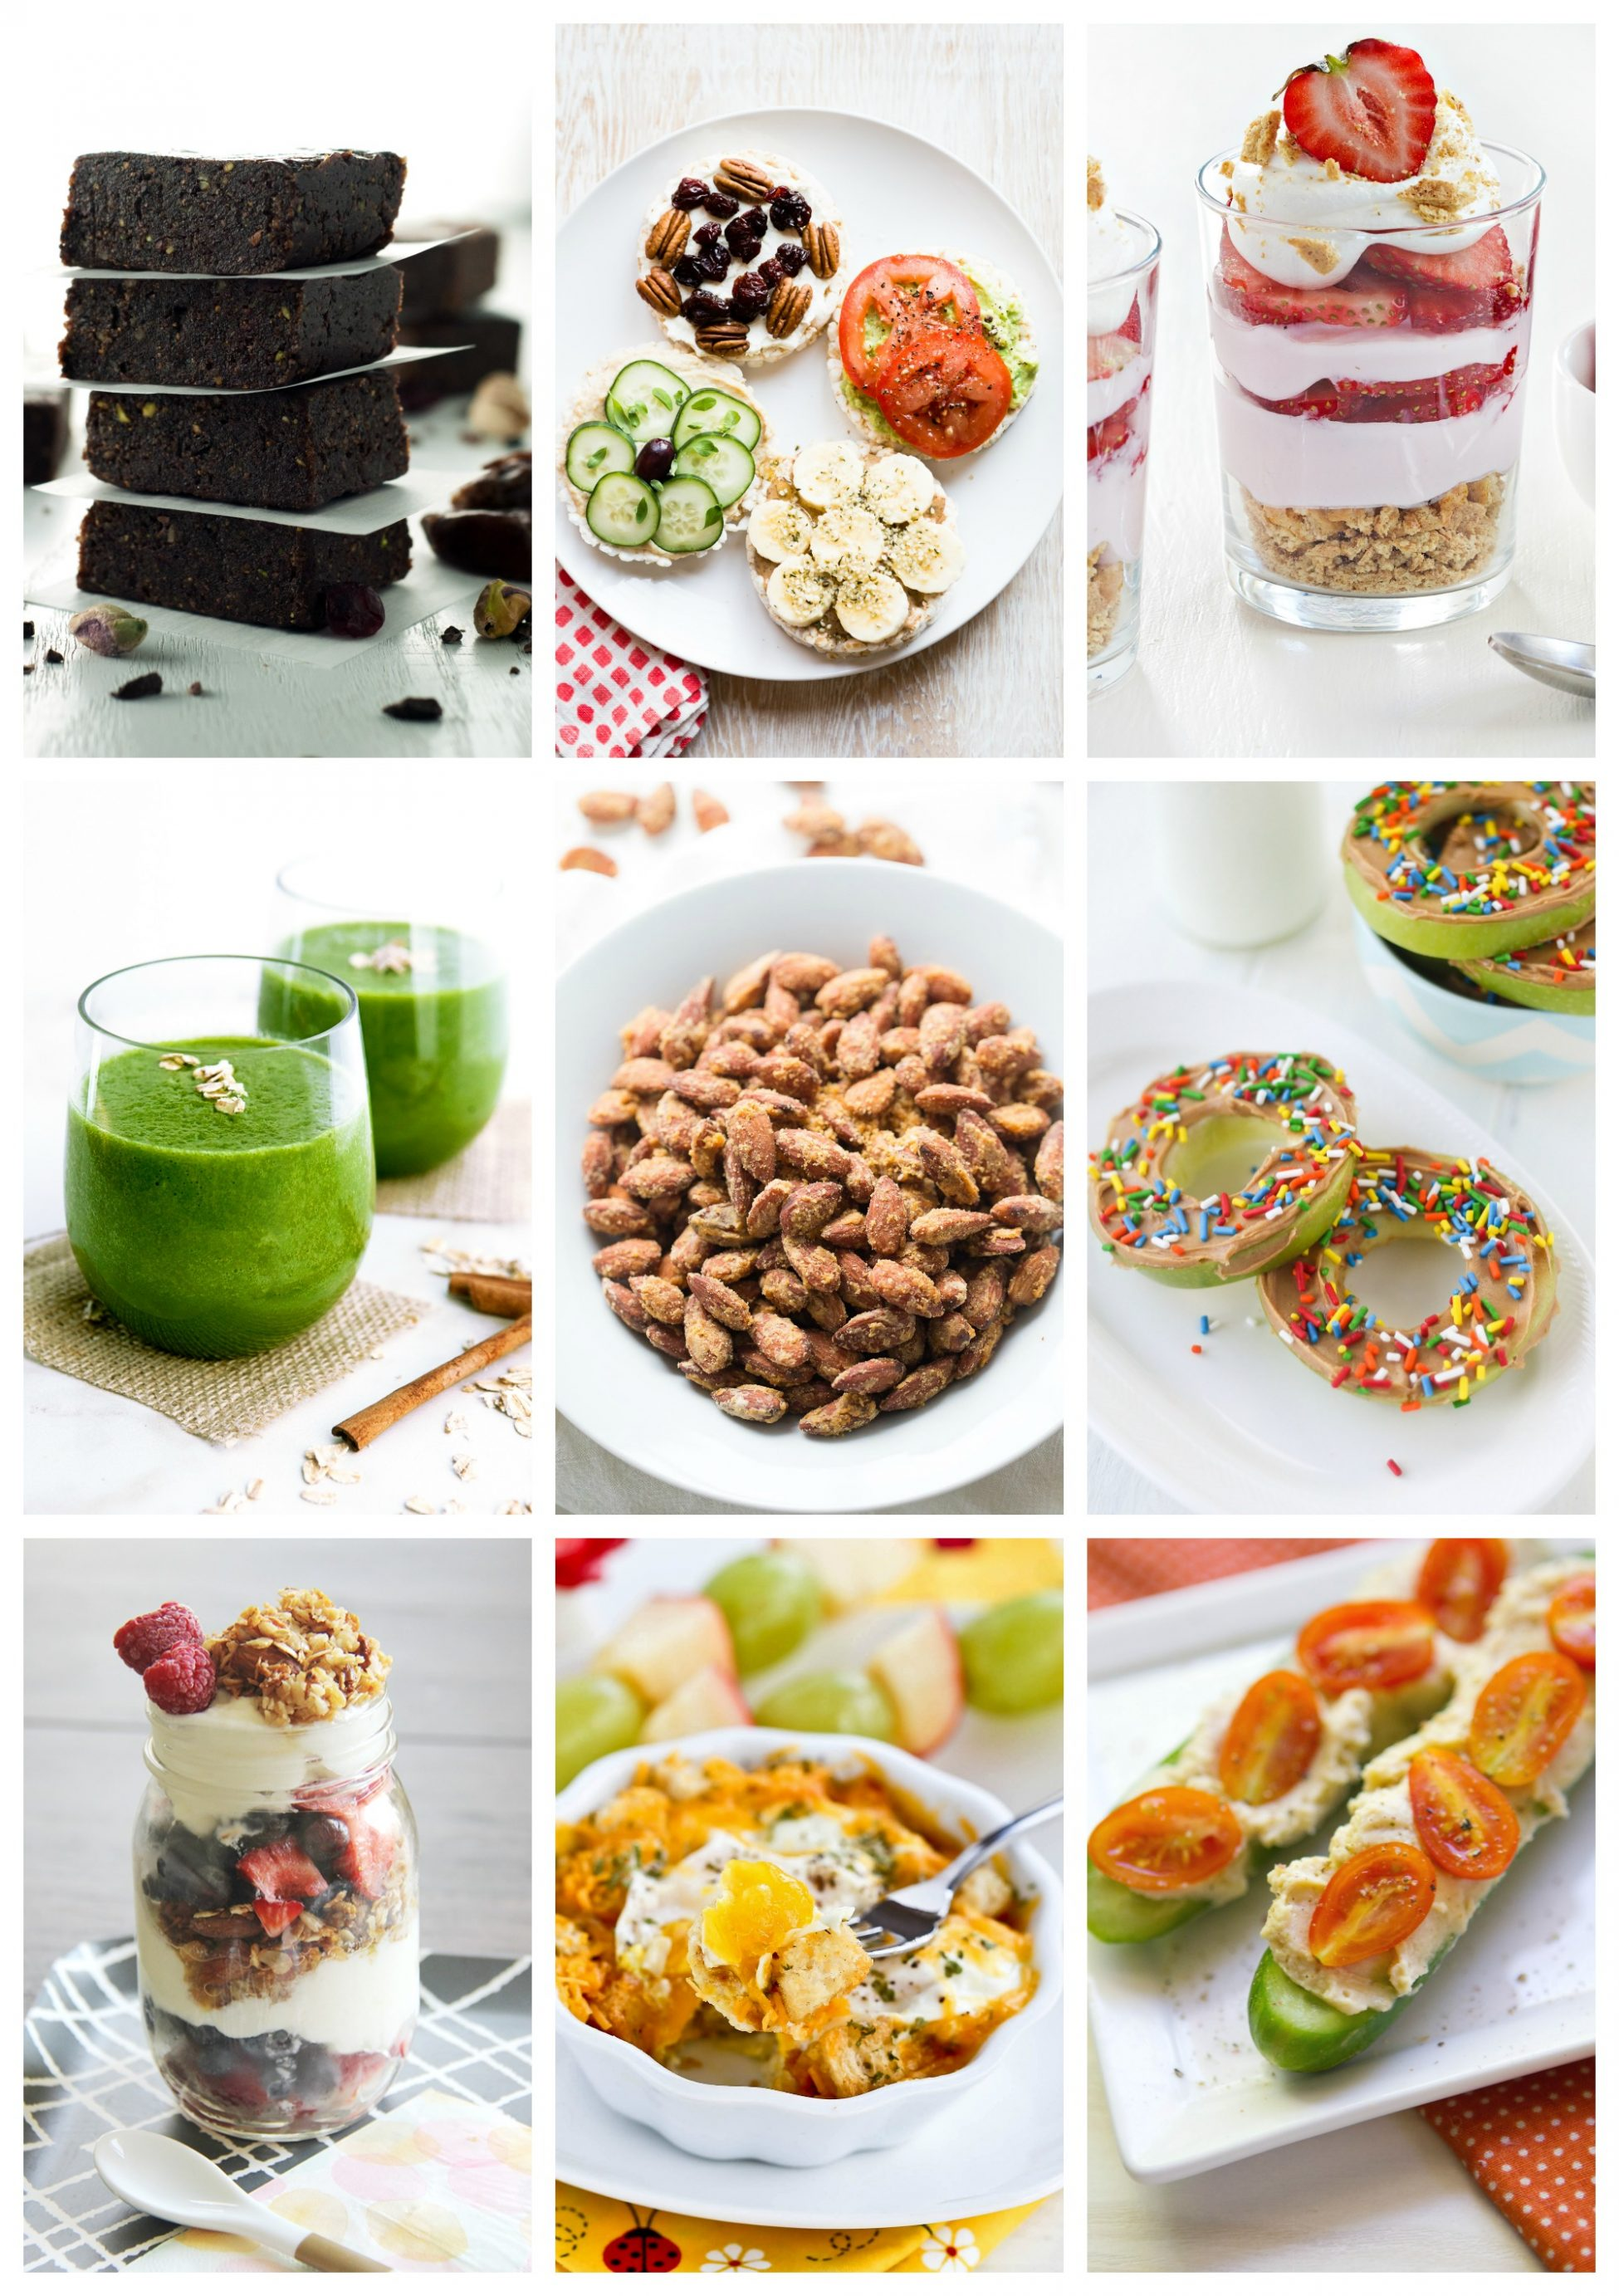 Recipes From 5-Minute Healthy Snacks Cookbook